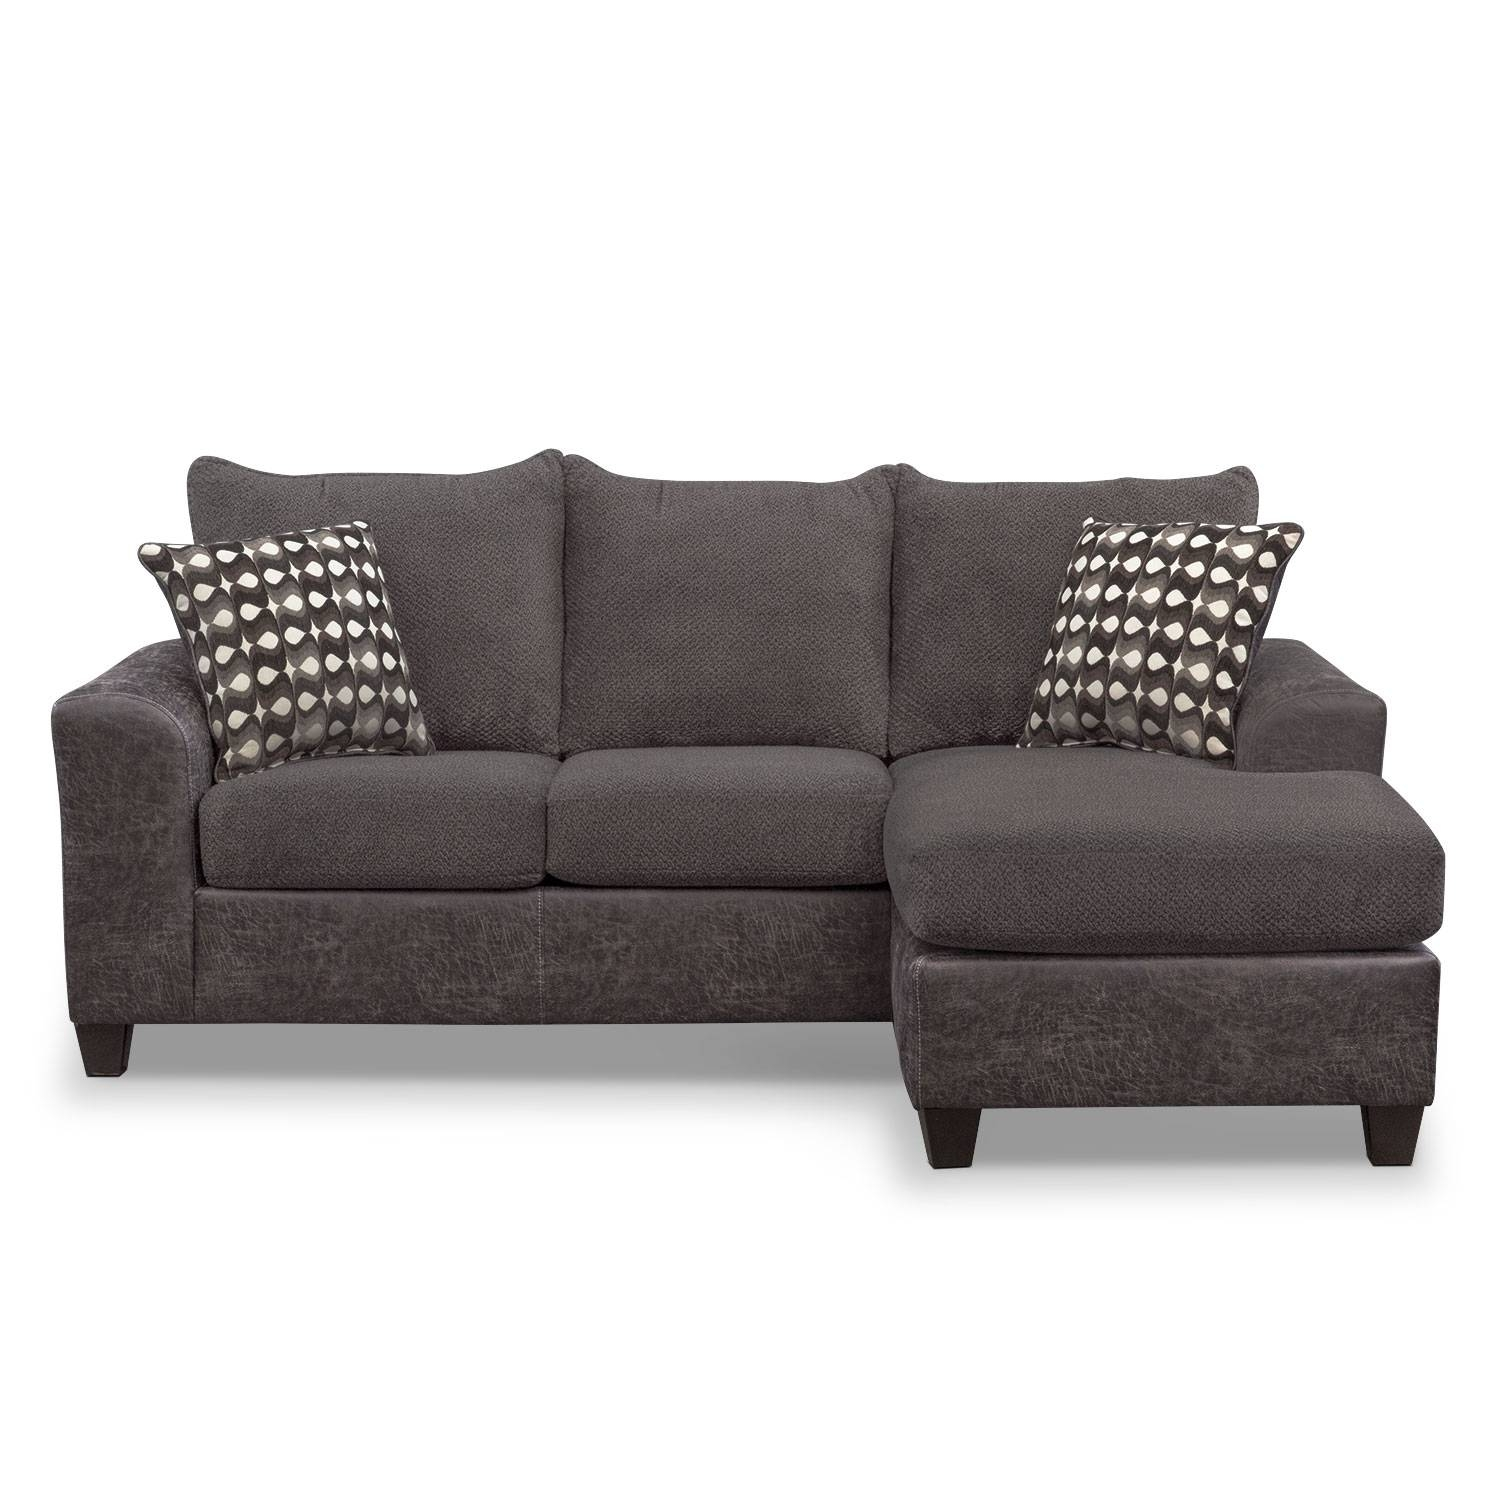 Brando Sofa With Chaise - Smoke | Value City Furniture throughout Sofa Corner Units (Image 3 of 30)